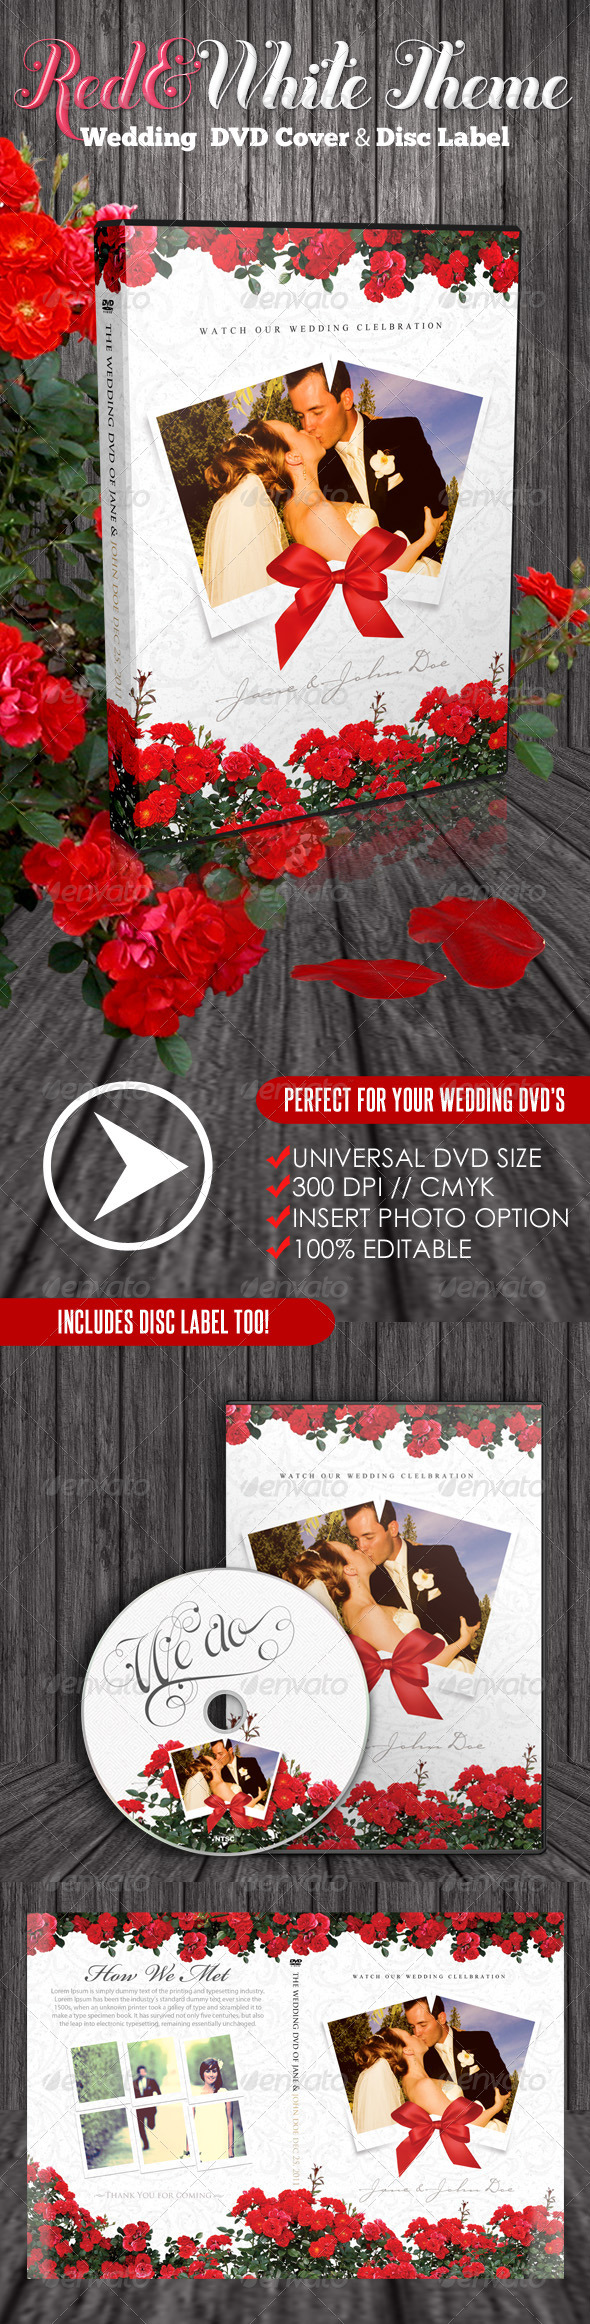 GraphicRiver Red & White Theme Wedding DVD & Disc Label 1566900